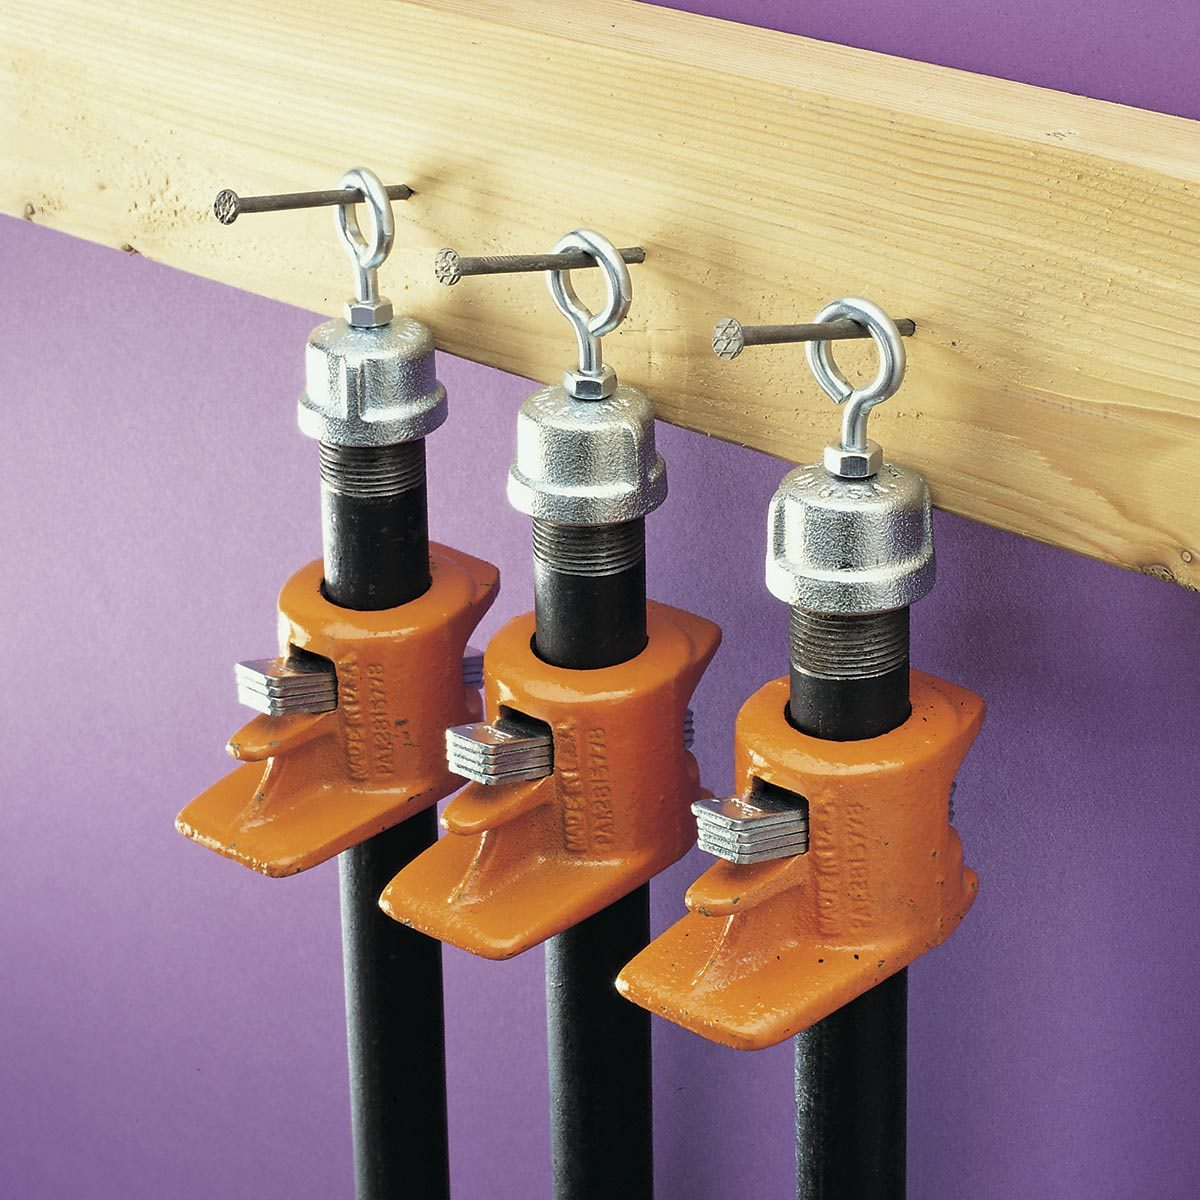 3 Pipe Clamp Storage Ideas The Family Handyman